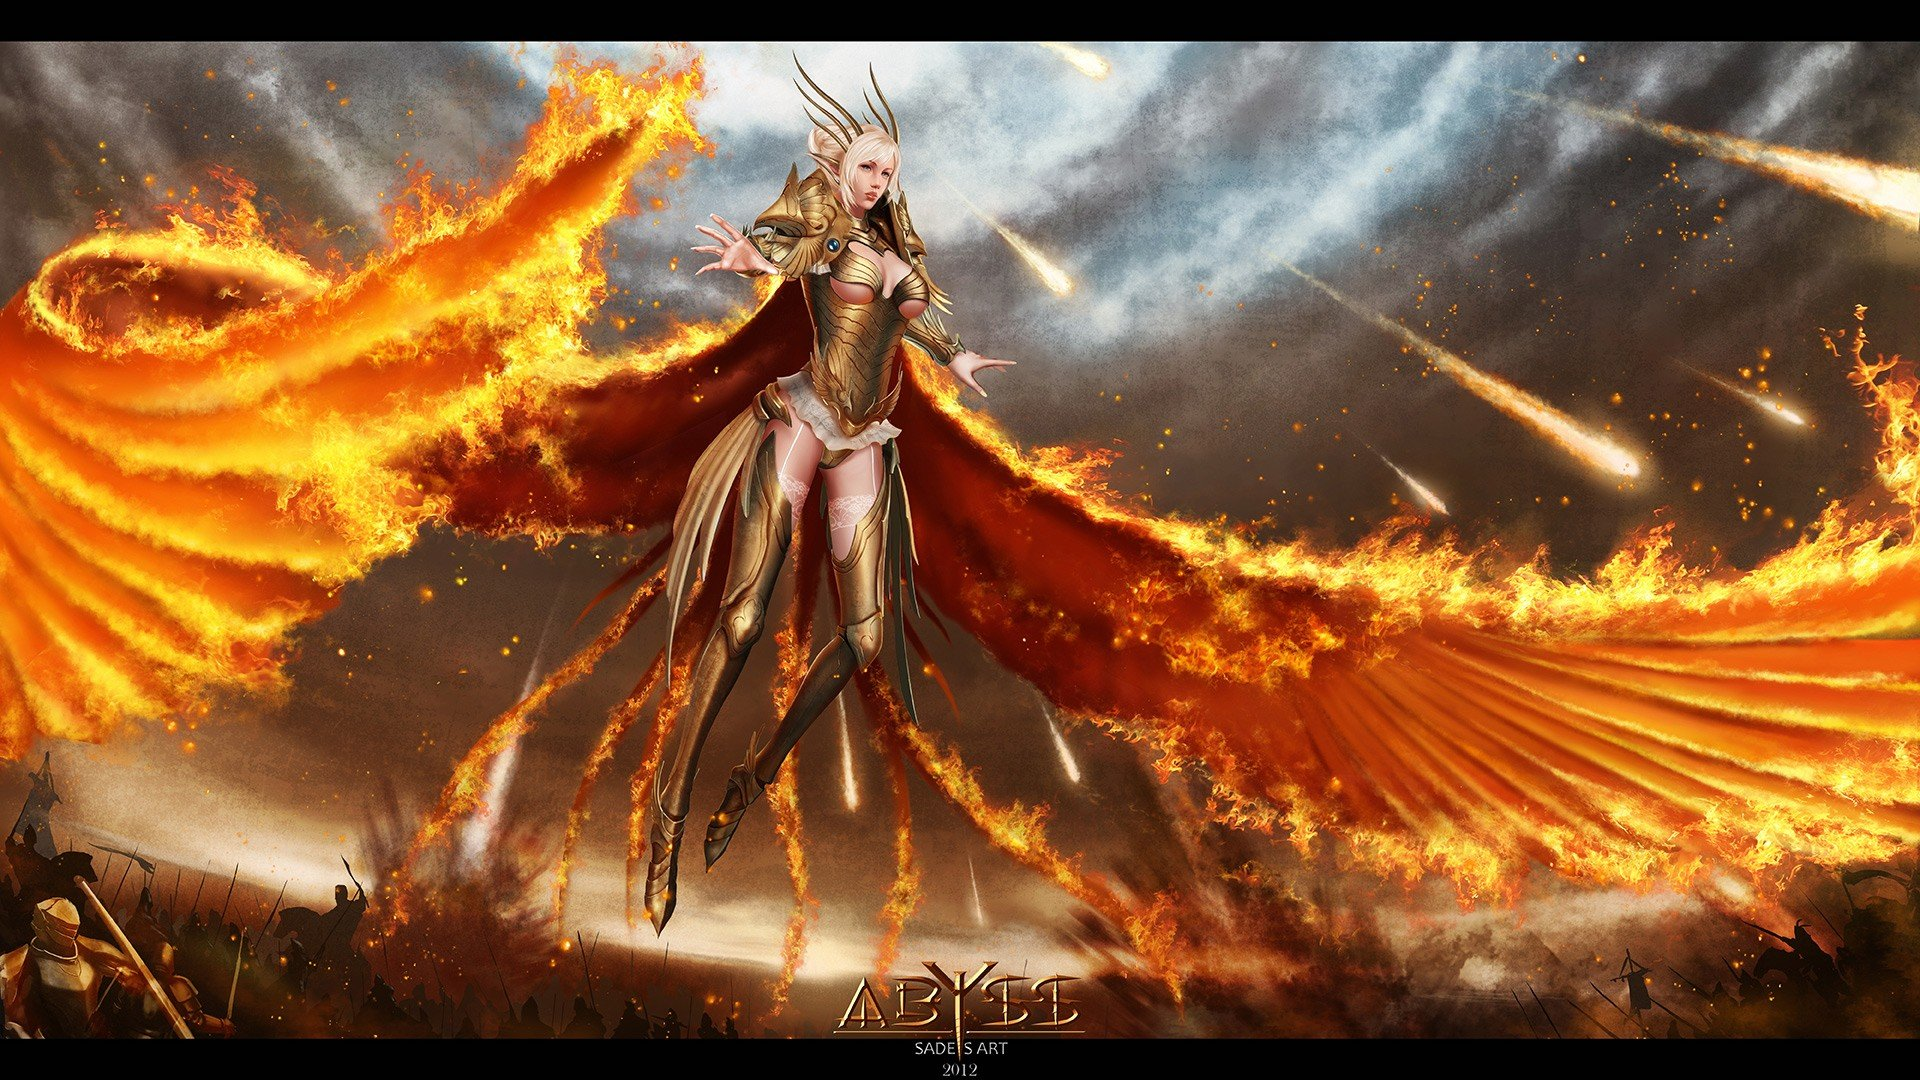 women flames wings fire fantasy art battles warriors